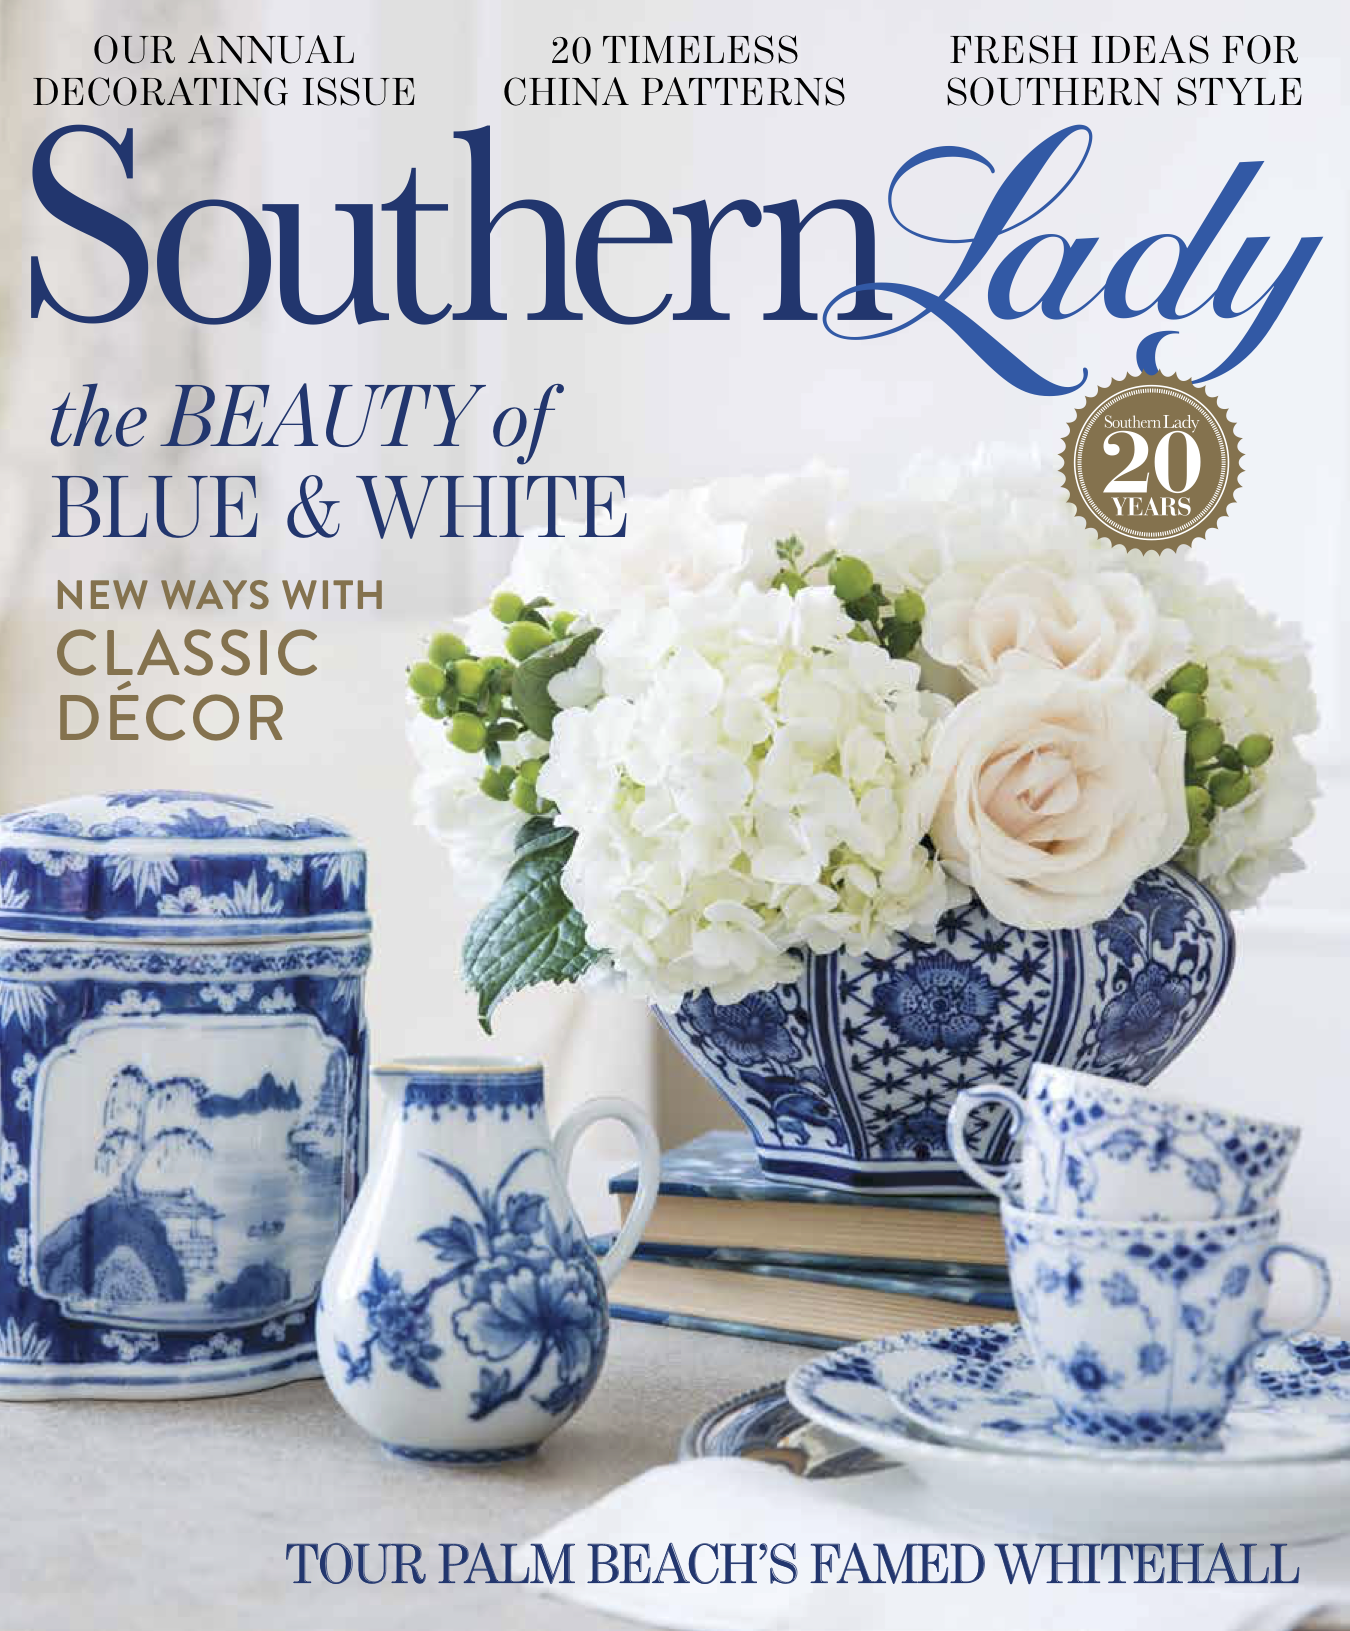 as-seen-in-southern-lady-magazine